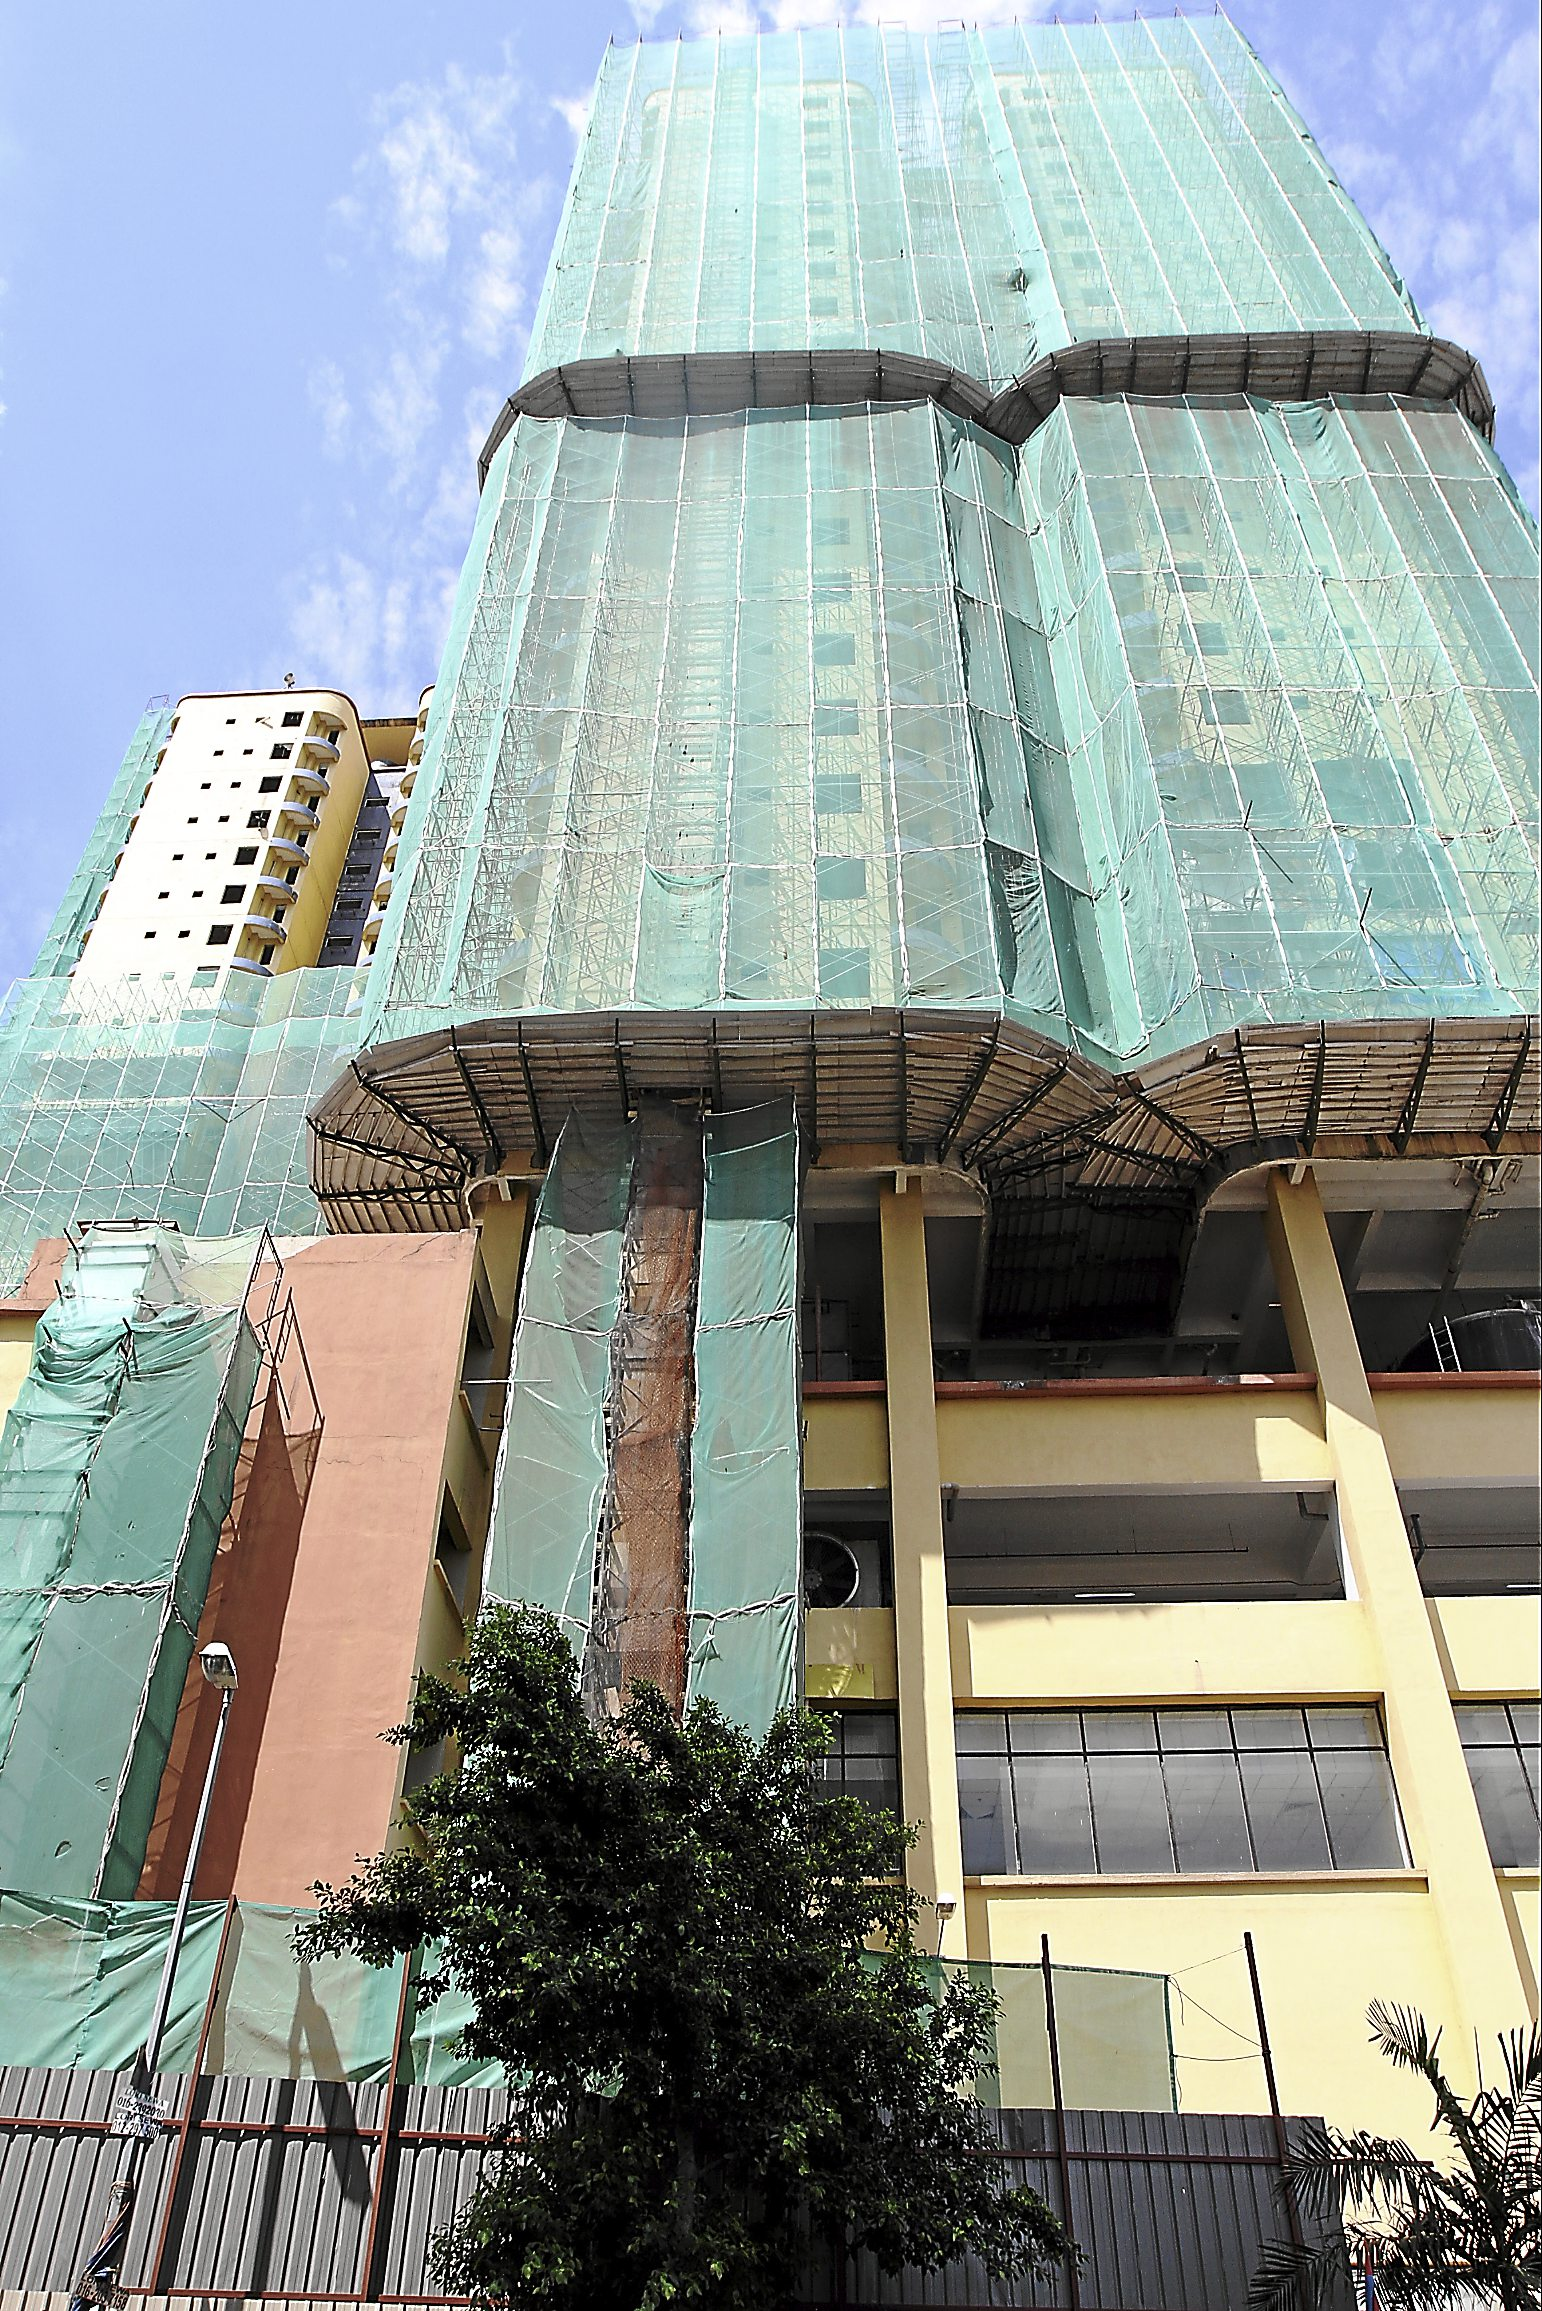 Incidentally another brown field development is taking shape across the road called Verve Suites KL South by Bukit Kiara Properties. The two-tower yellow structure with 24 storeys each was empty for two years, before it was rented by a college. The development comprises about 300 service apartment concept. A banner informing that units are open for sale is now visible from the highway.